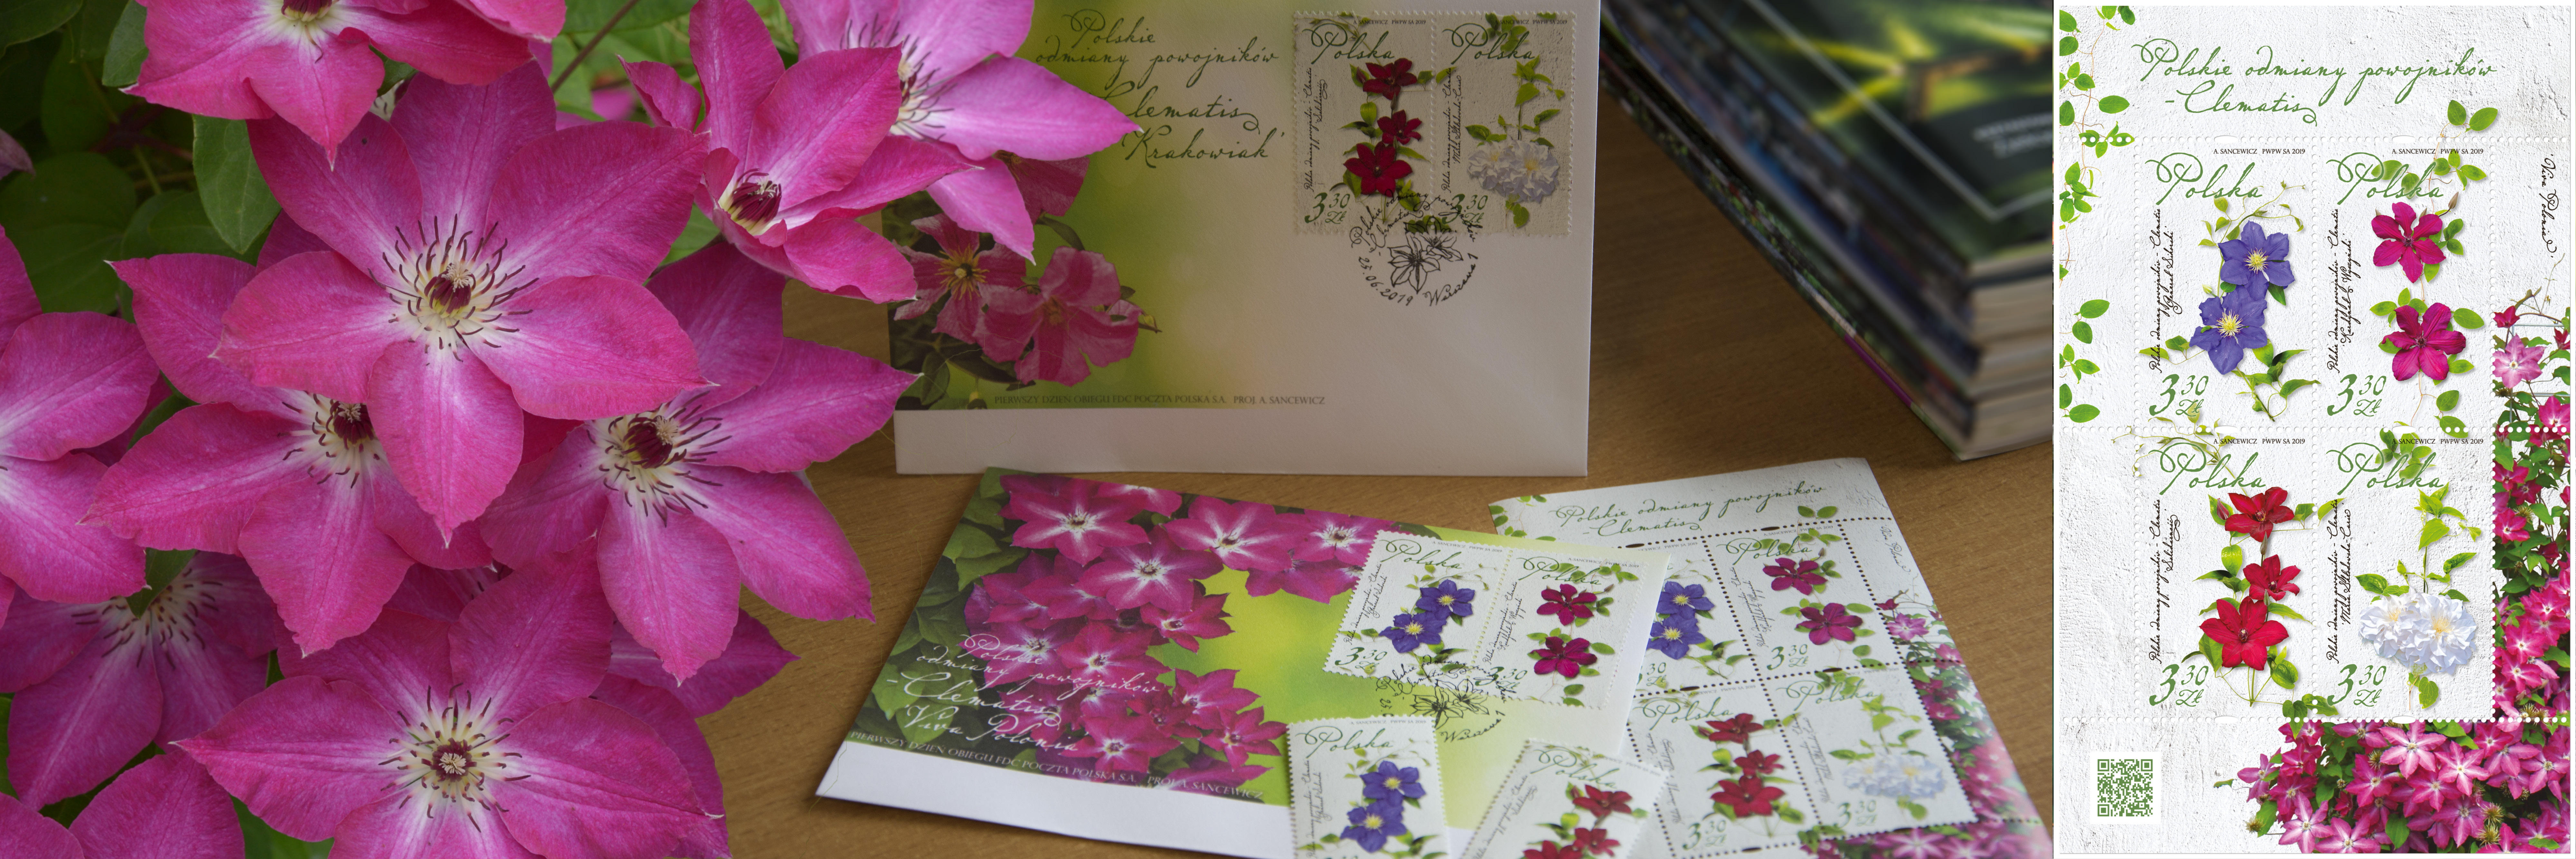 Polish Clematis cultivars on The Polish Post stamps